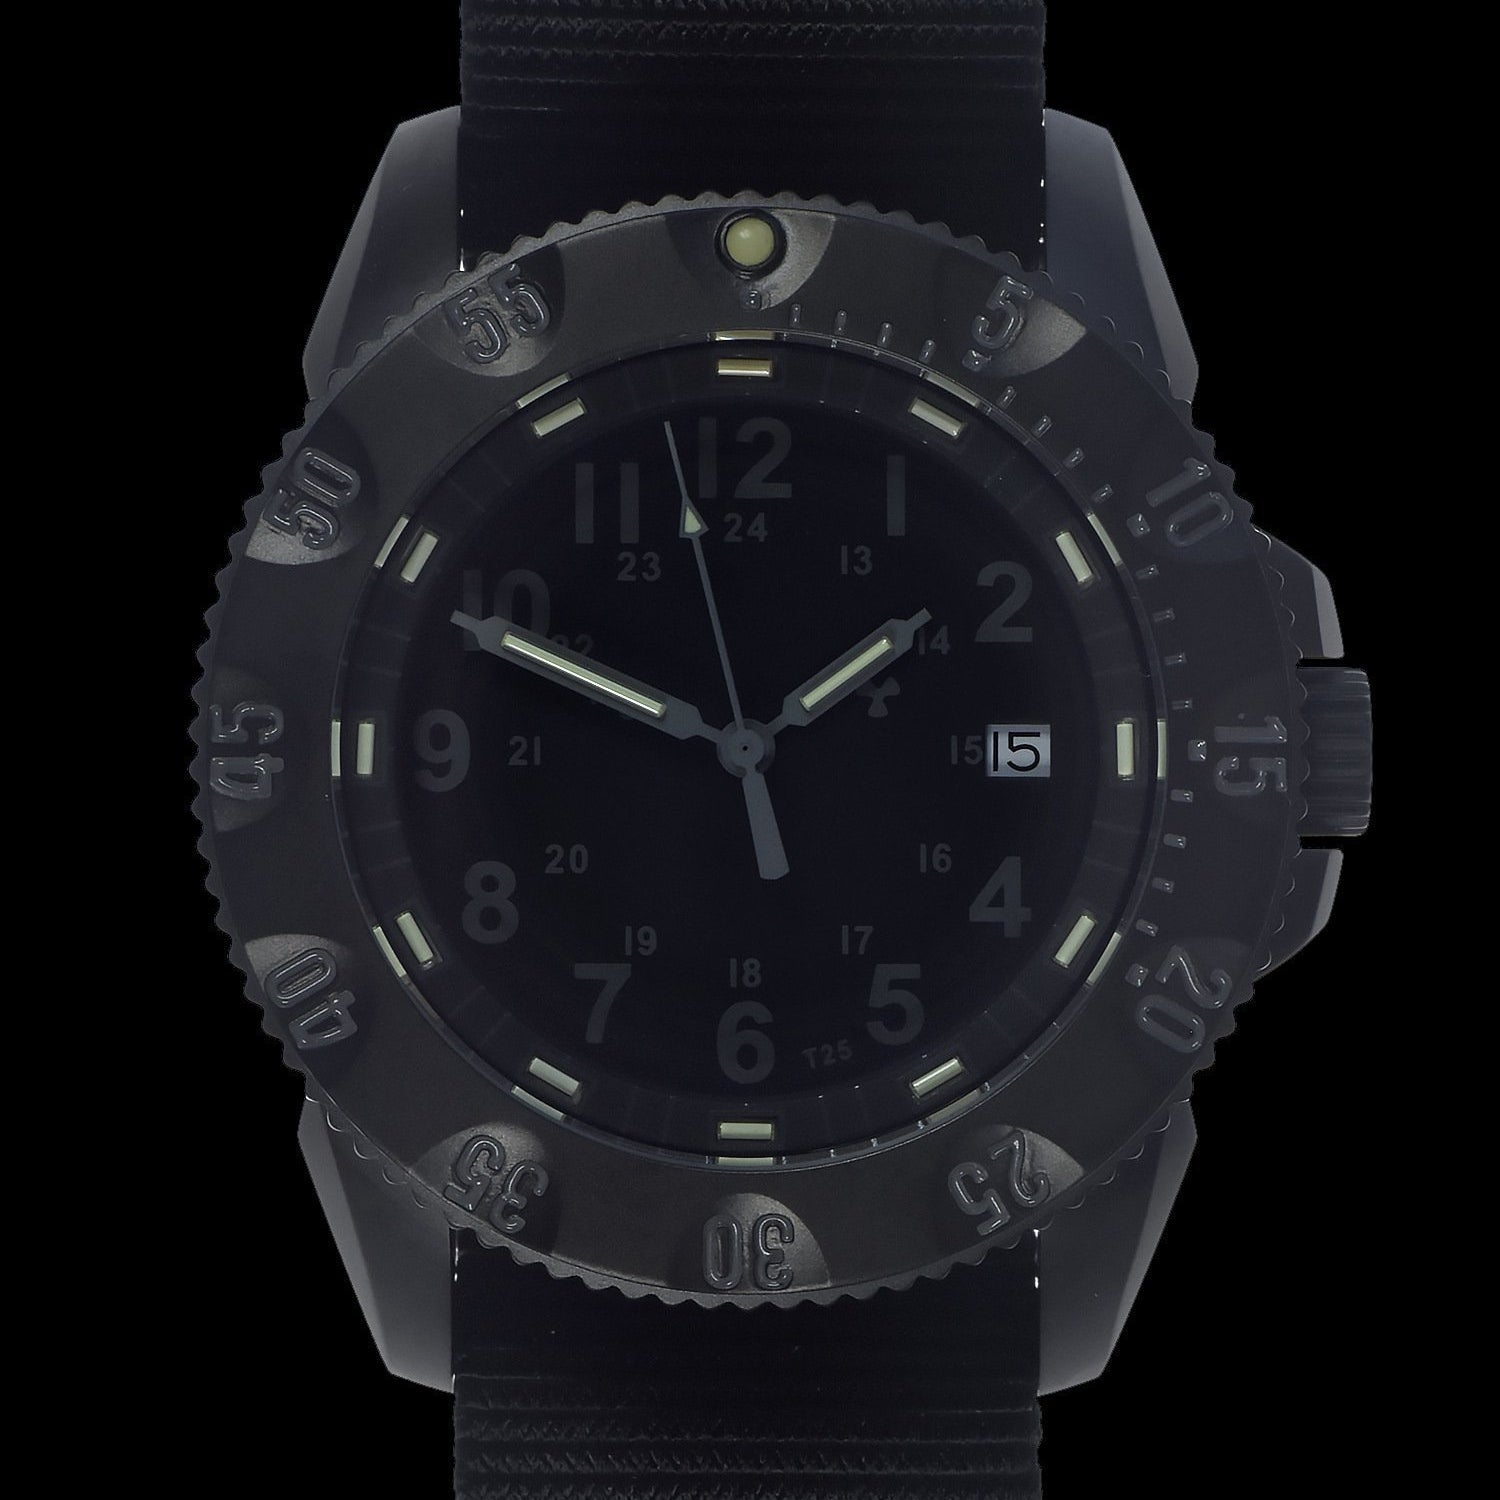 MWC P656 Tactical Series Watch with Subdued Dial, GTLS Tritium Quartz (Date Version)